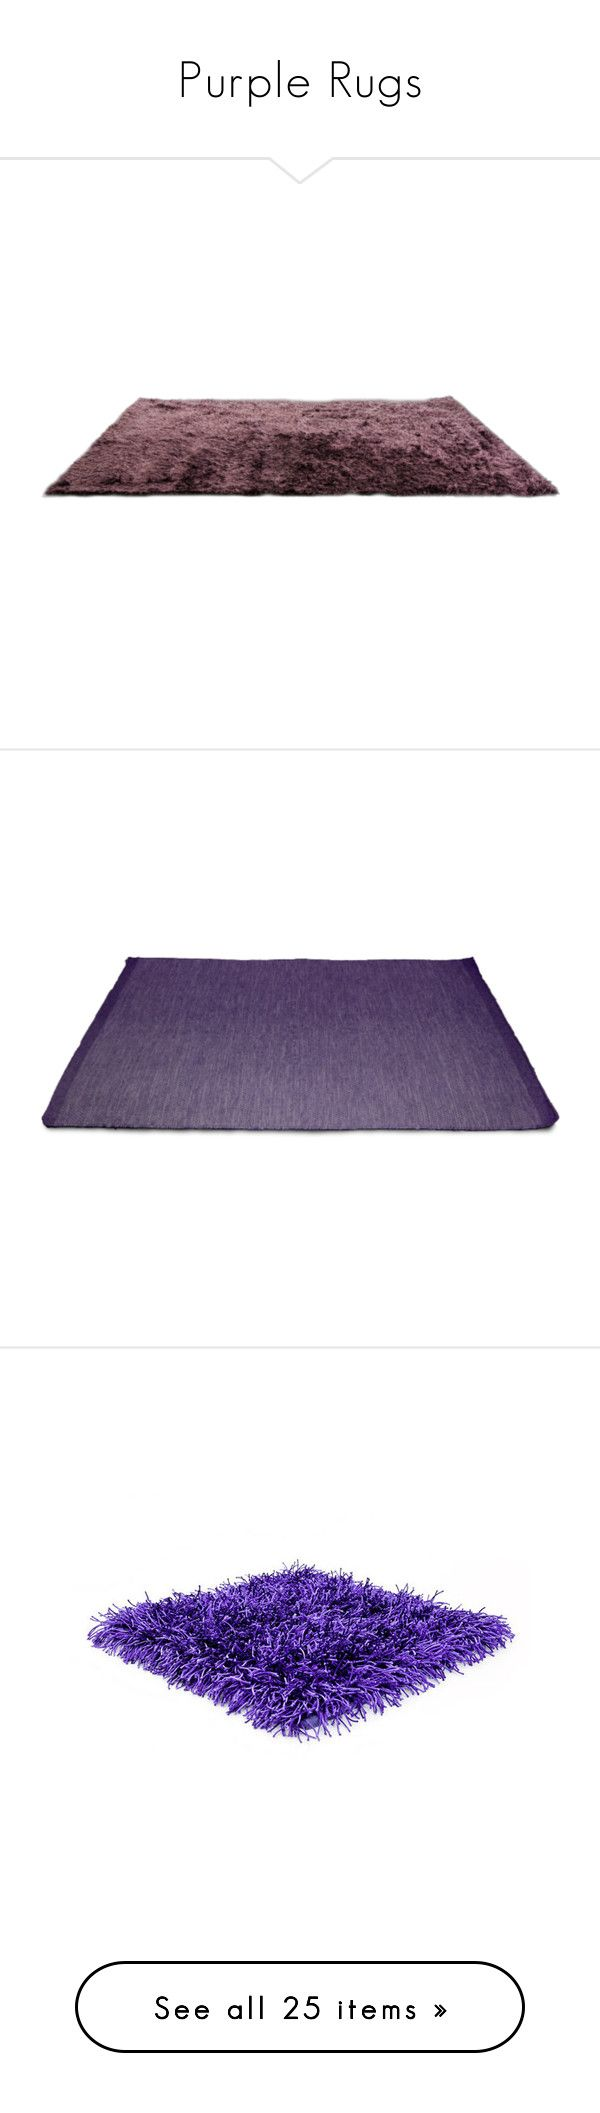 """Purple Rugs"" by lailoooo ❤ liked on Polyvore featuring rugs, tapete, accessories, home, modern area rugs, purple rug, modern rugs, purple area rugs, polyester rugs and purple wool rug"